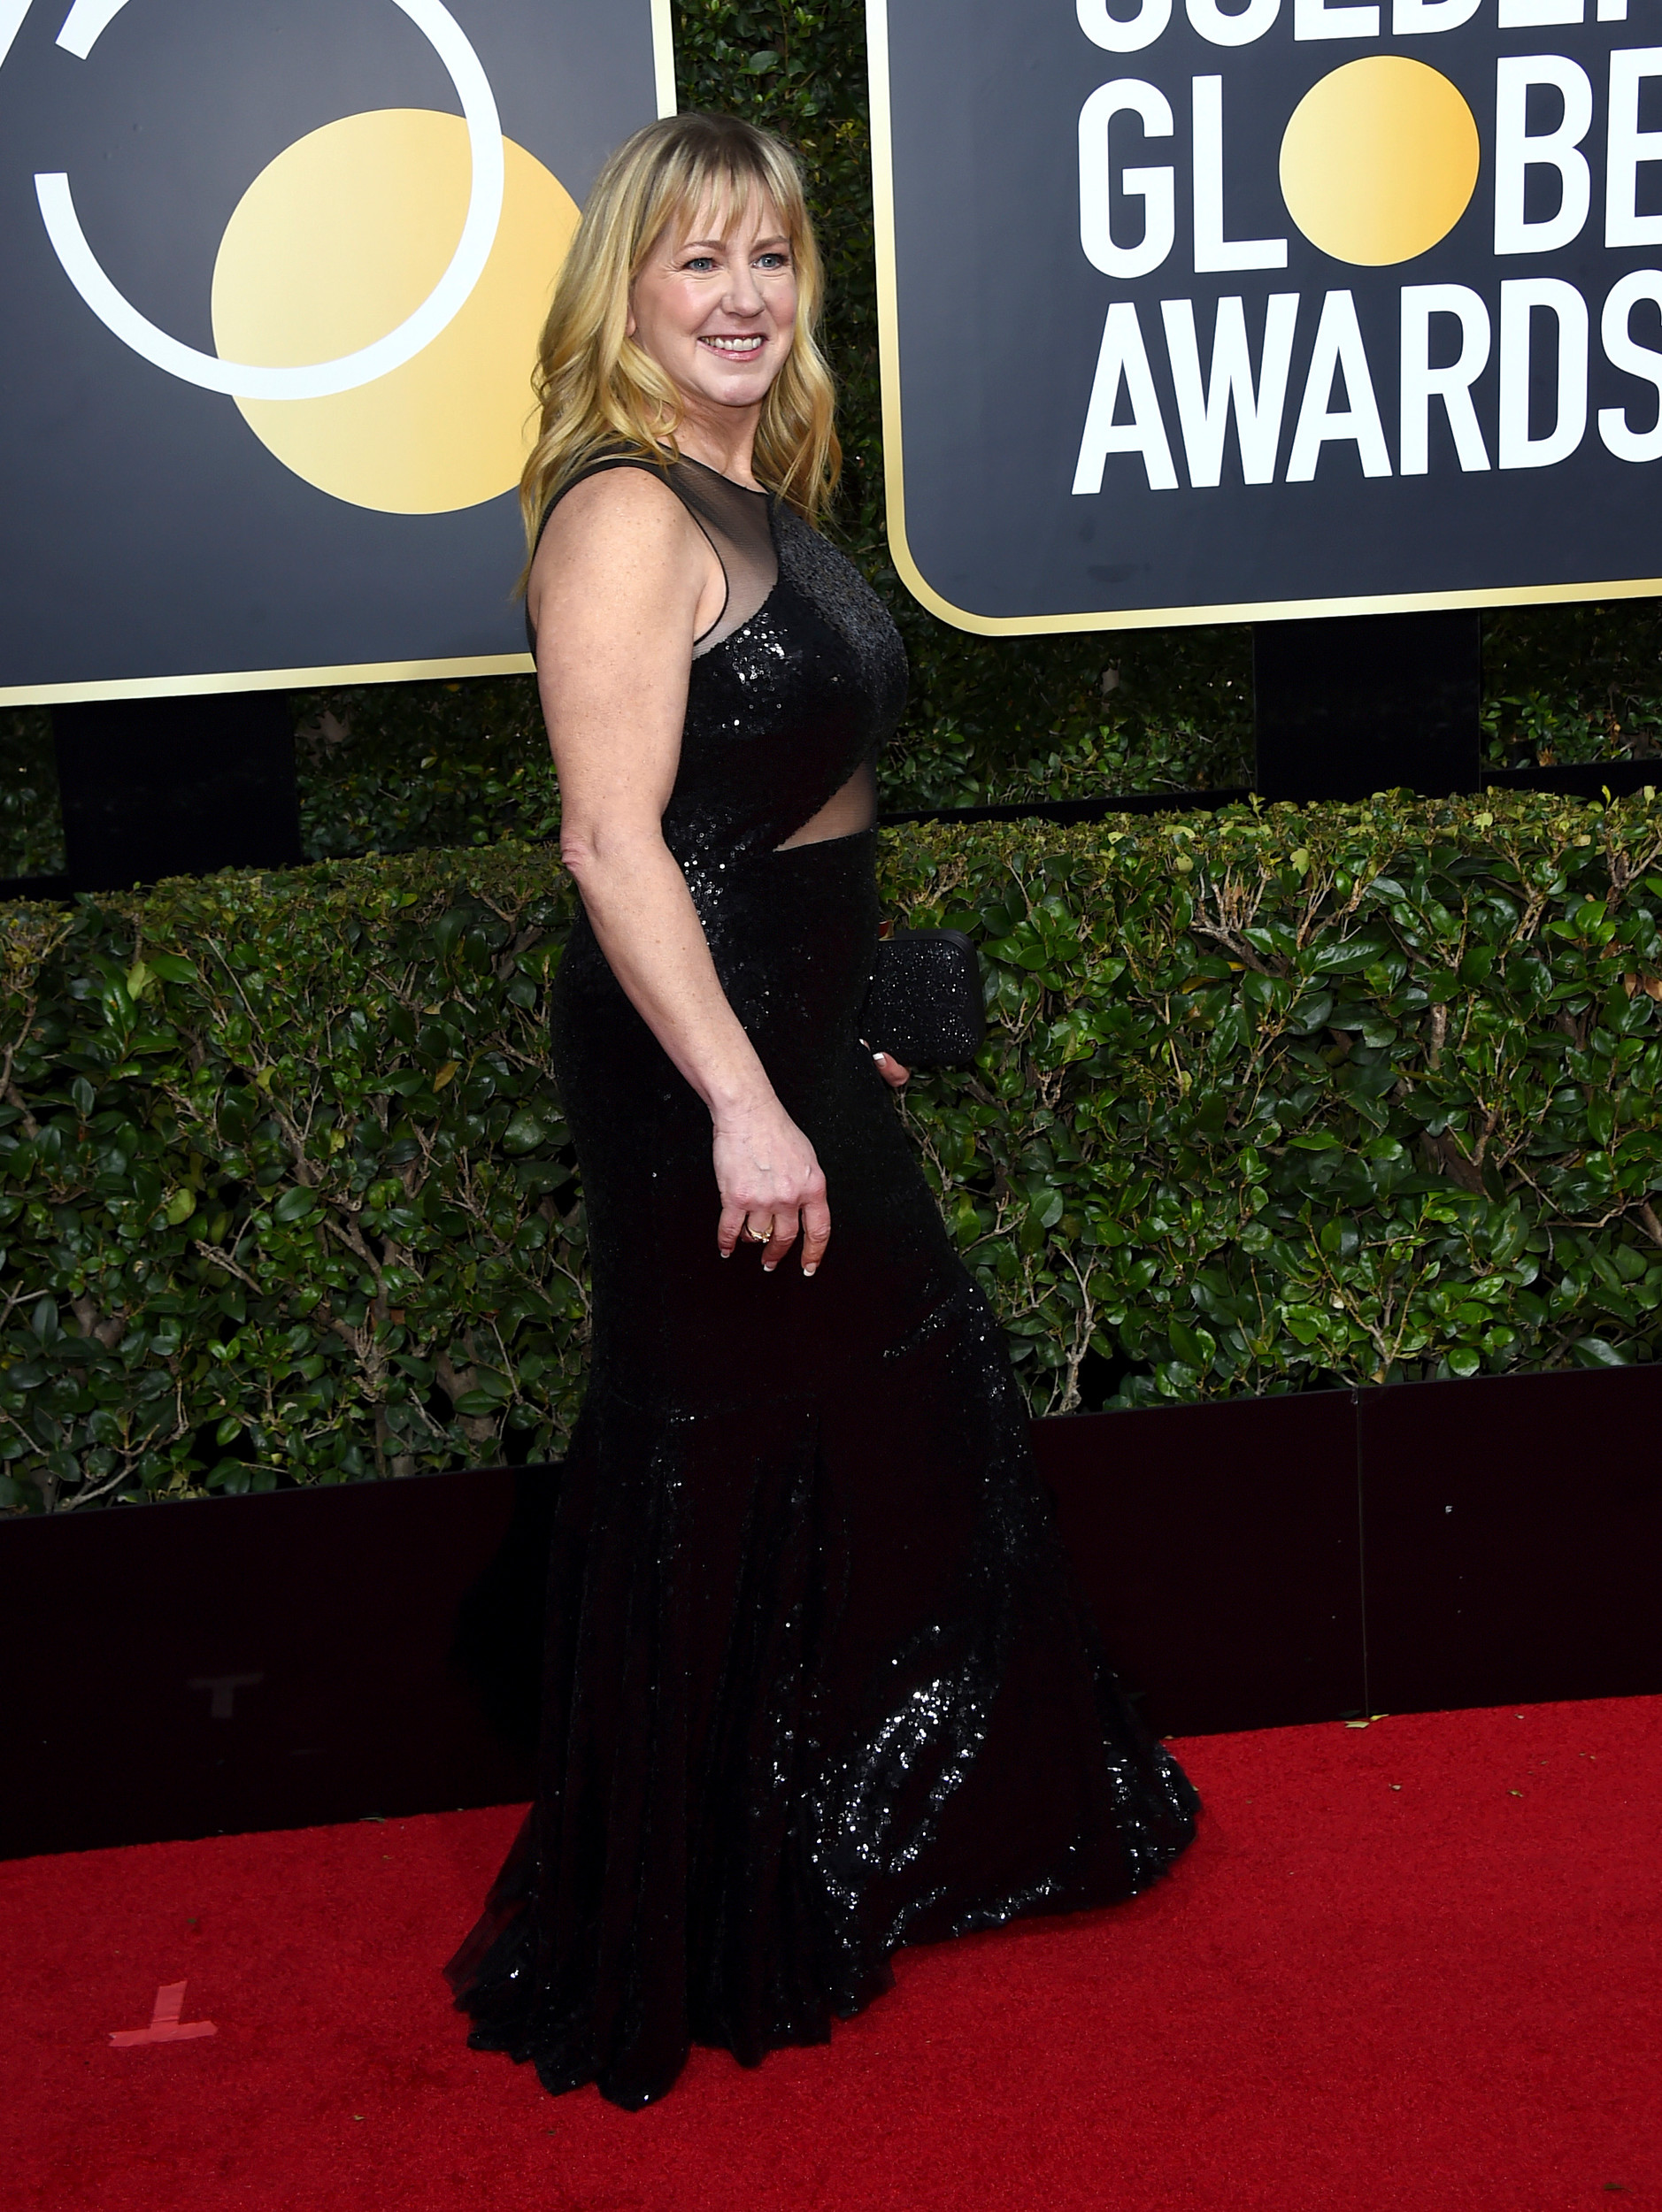 Tonya Harding arrives at the 75th annual Golden Globe Awards at the Beverly Hilton Hotel on Sunday.